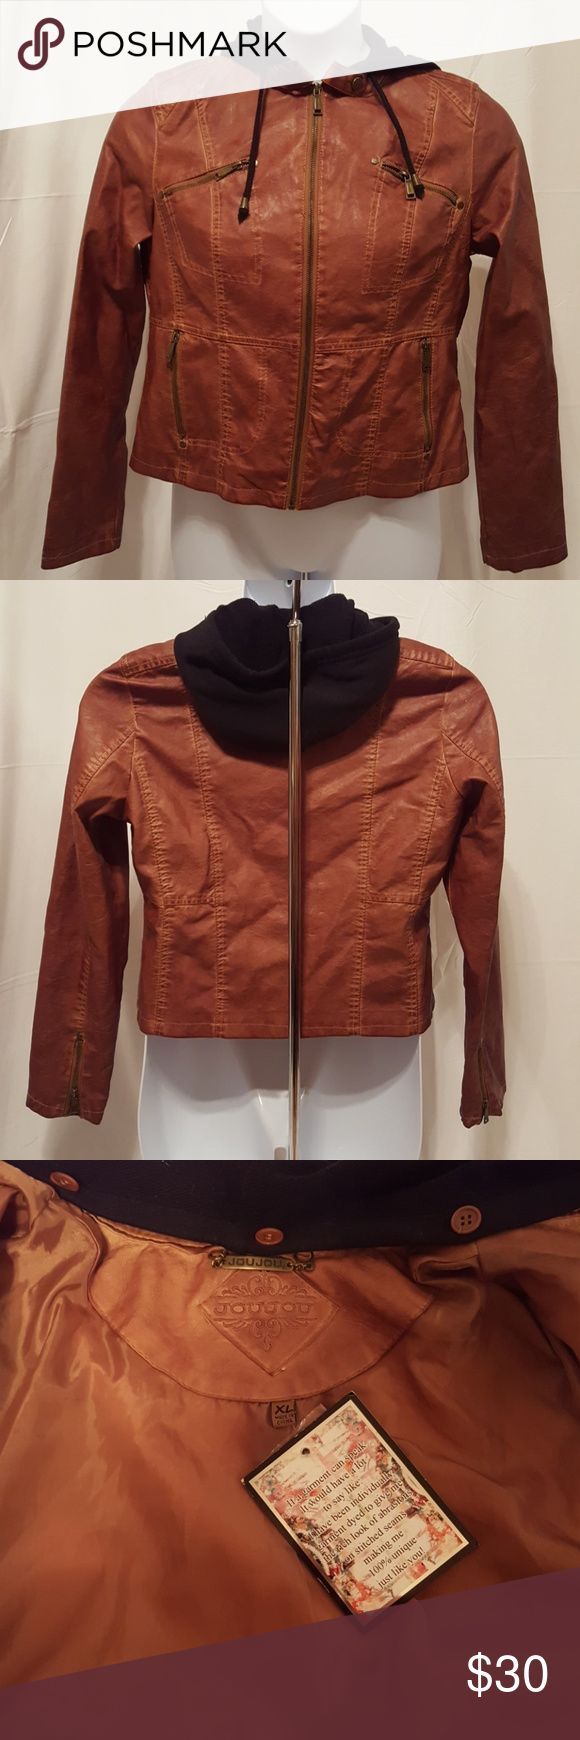 "NWT Hooded Faux-leather Jacket JouJou Brand Hooded Leather Jacket  Tobacco-colored  Brand new. Never worn. No damages.  The jacket is 20"" arm pit to arm pit  Perfect for cool weather and a closet staple!   Offers are welcomed. No low-balling. Jou Jou Jackets & Coats Utility Jackets"